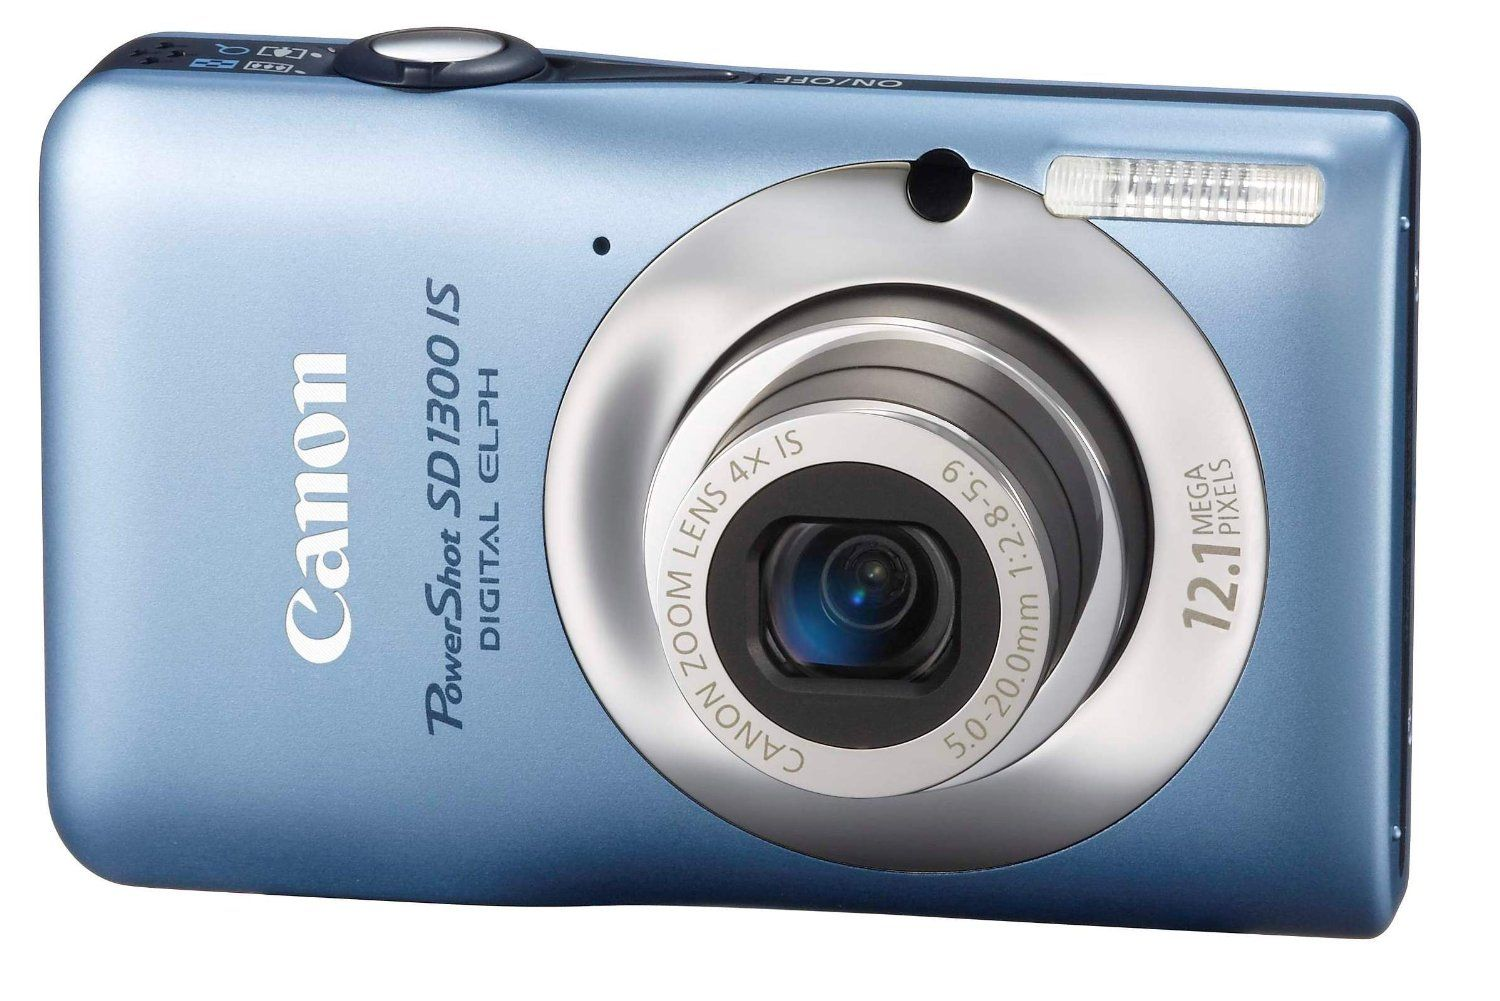 Canon Powershot Sd1300is 12 1 Mp Digital Camera With 4x Wide Angle Optical Image Stabilized Zoom And 2 7 Best Digital Camera Canon Digital Camera Optical Image